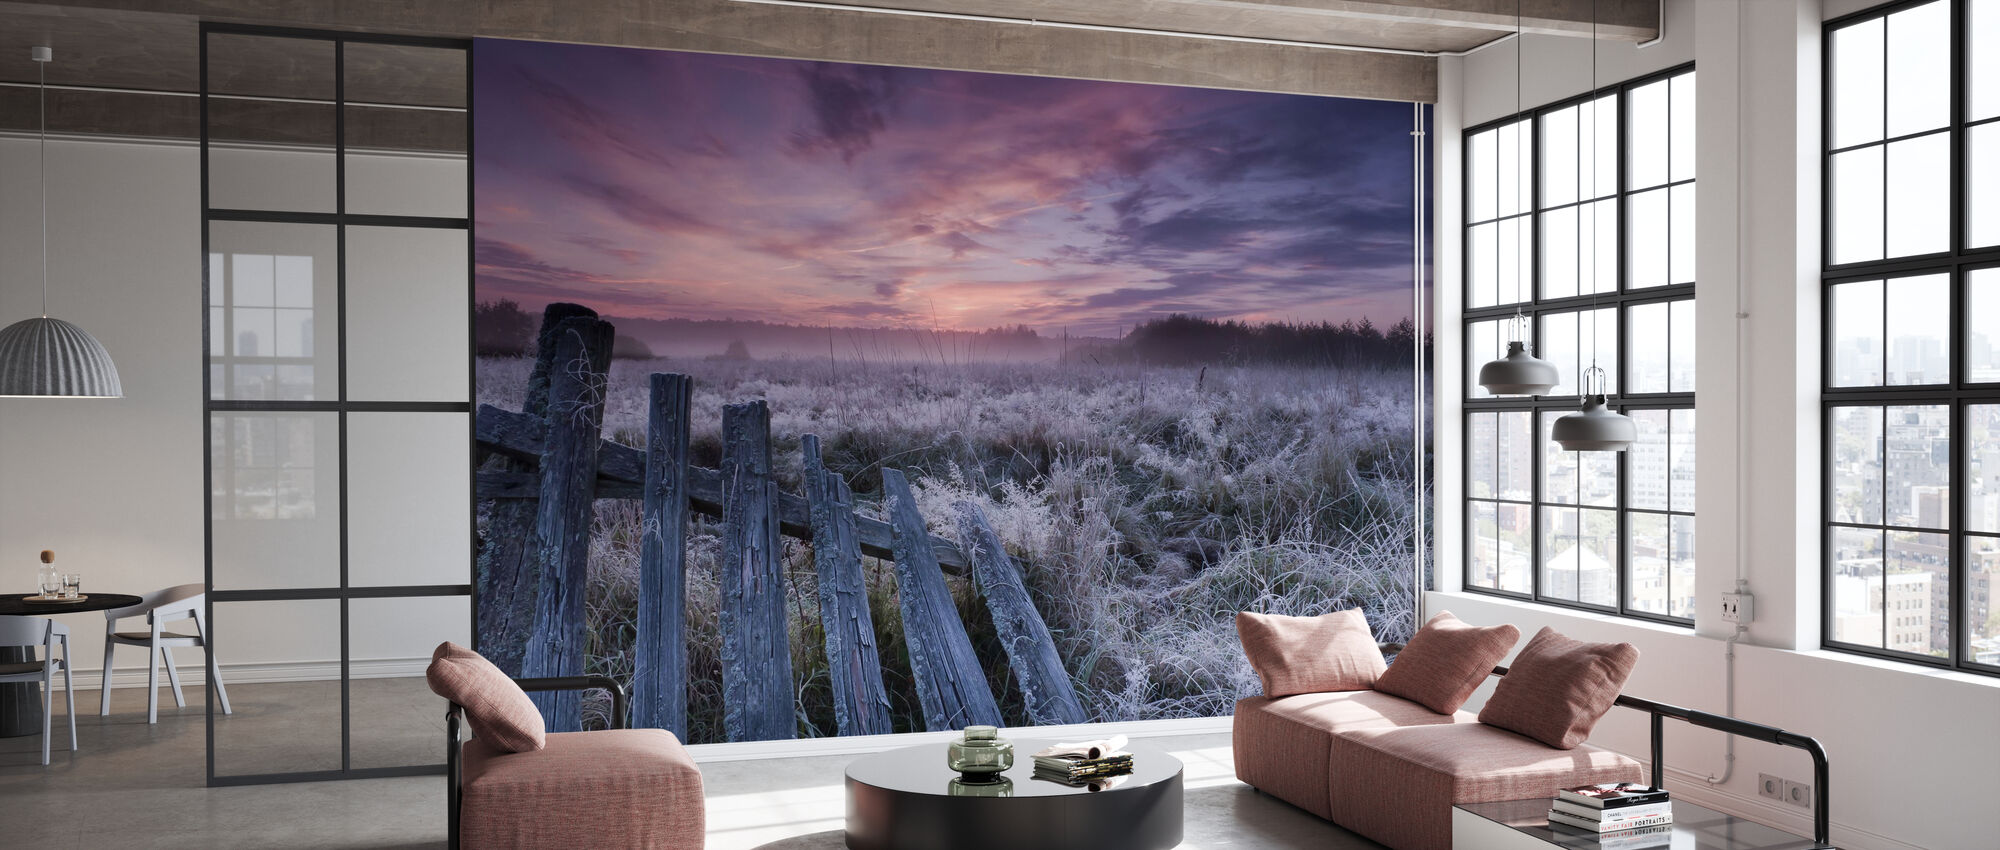 Dawn Of Bialowieza Meadows High Quality Wall Murals With Free Us Delivery Photowall